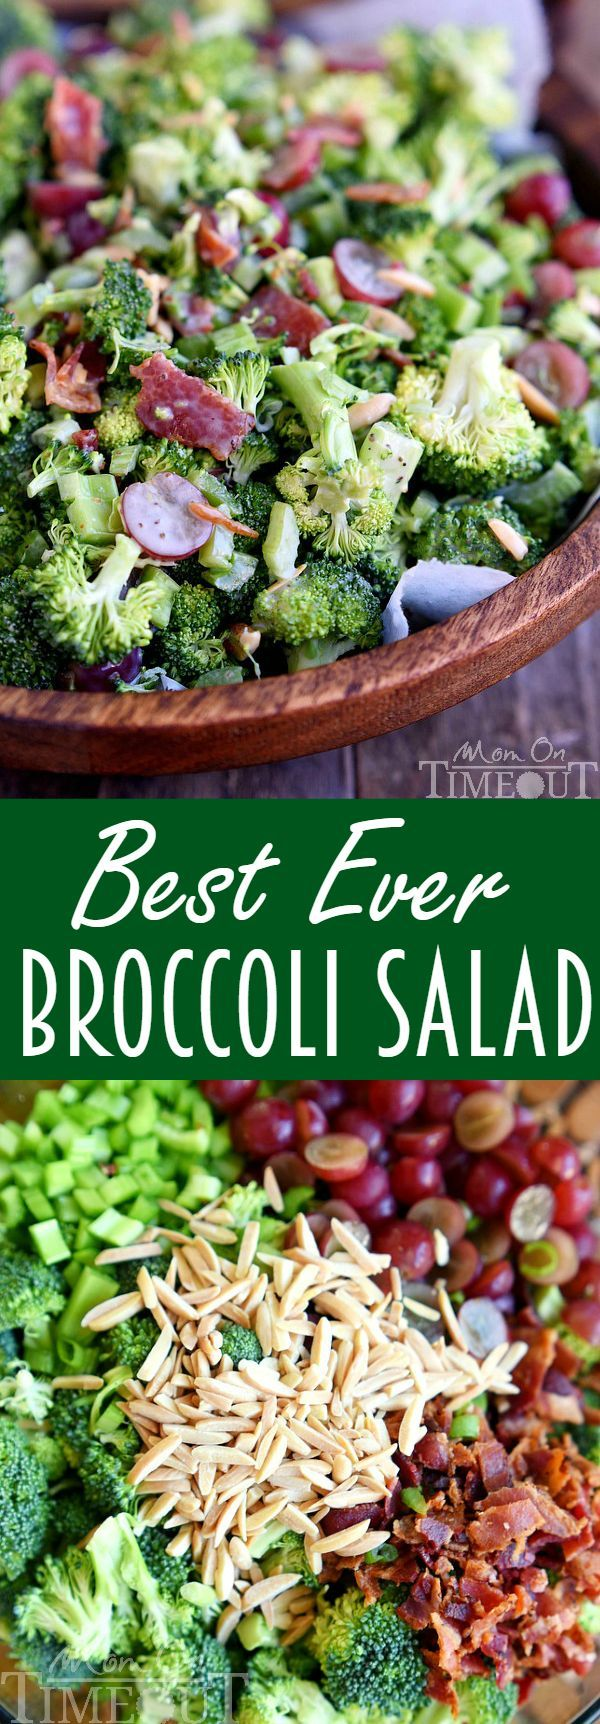 Don't believe me? Just try it! This Best Ever Broccoli Salad recipe is bursting with flavor! Packed full of broccoli, bacon, grapes, almonds and more - every bite is delicious!